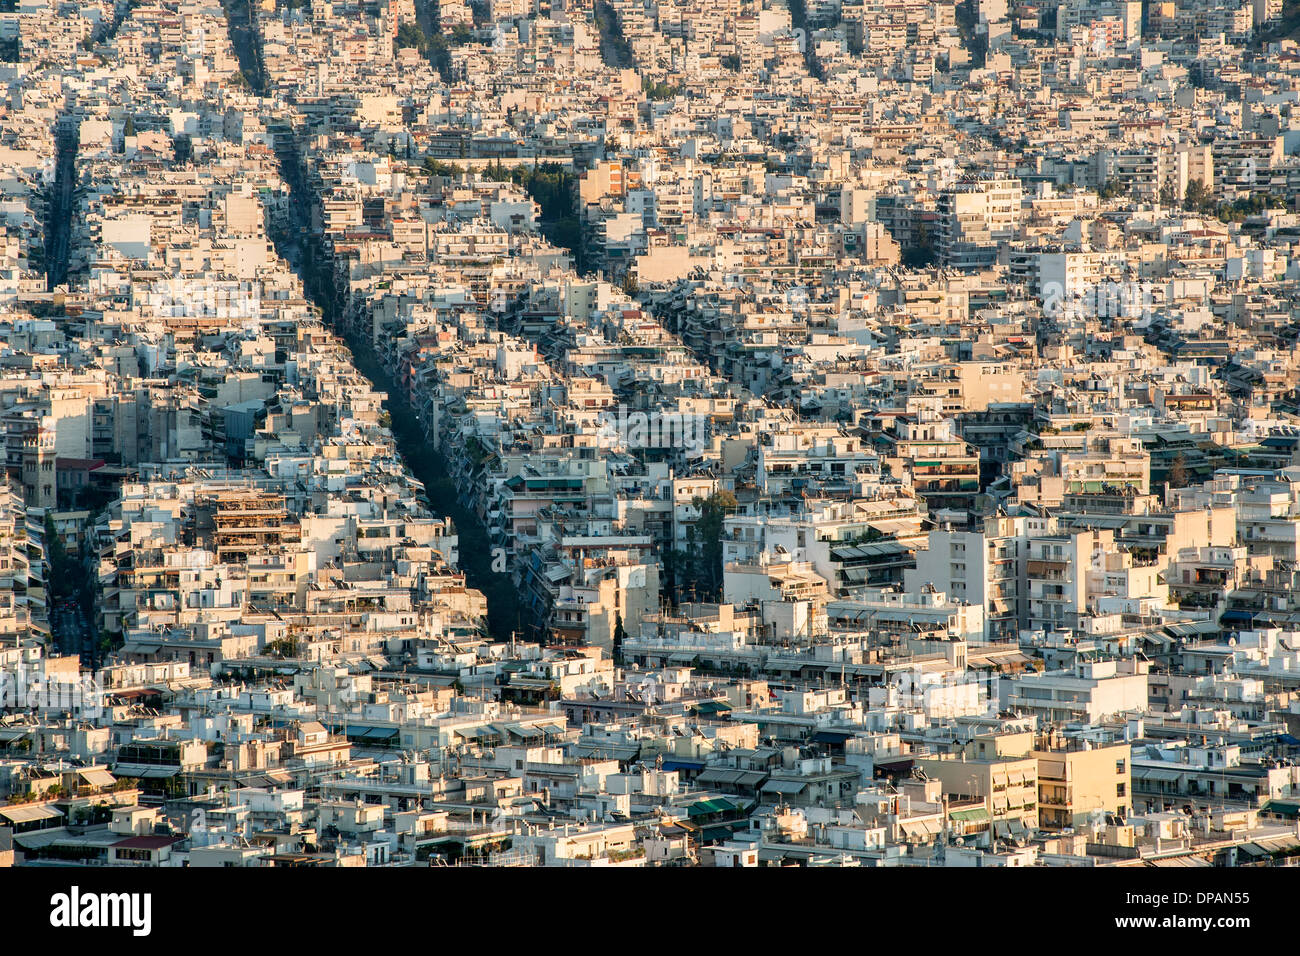 View across Athens, the capital of Greece. - Stock Image